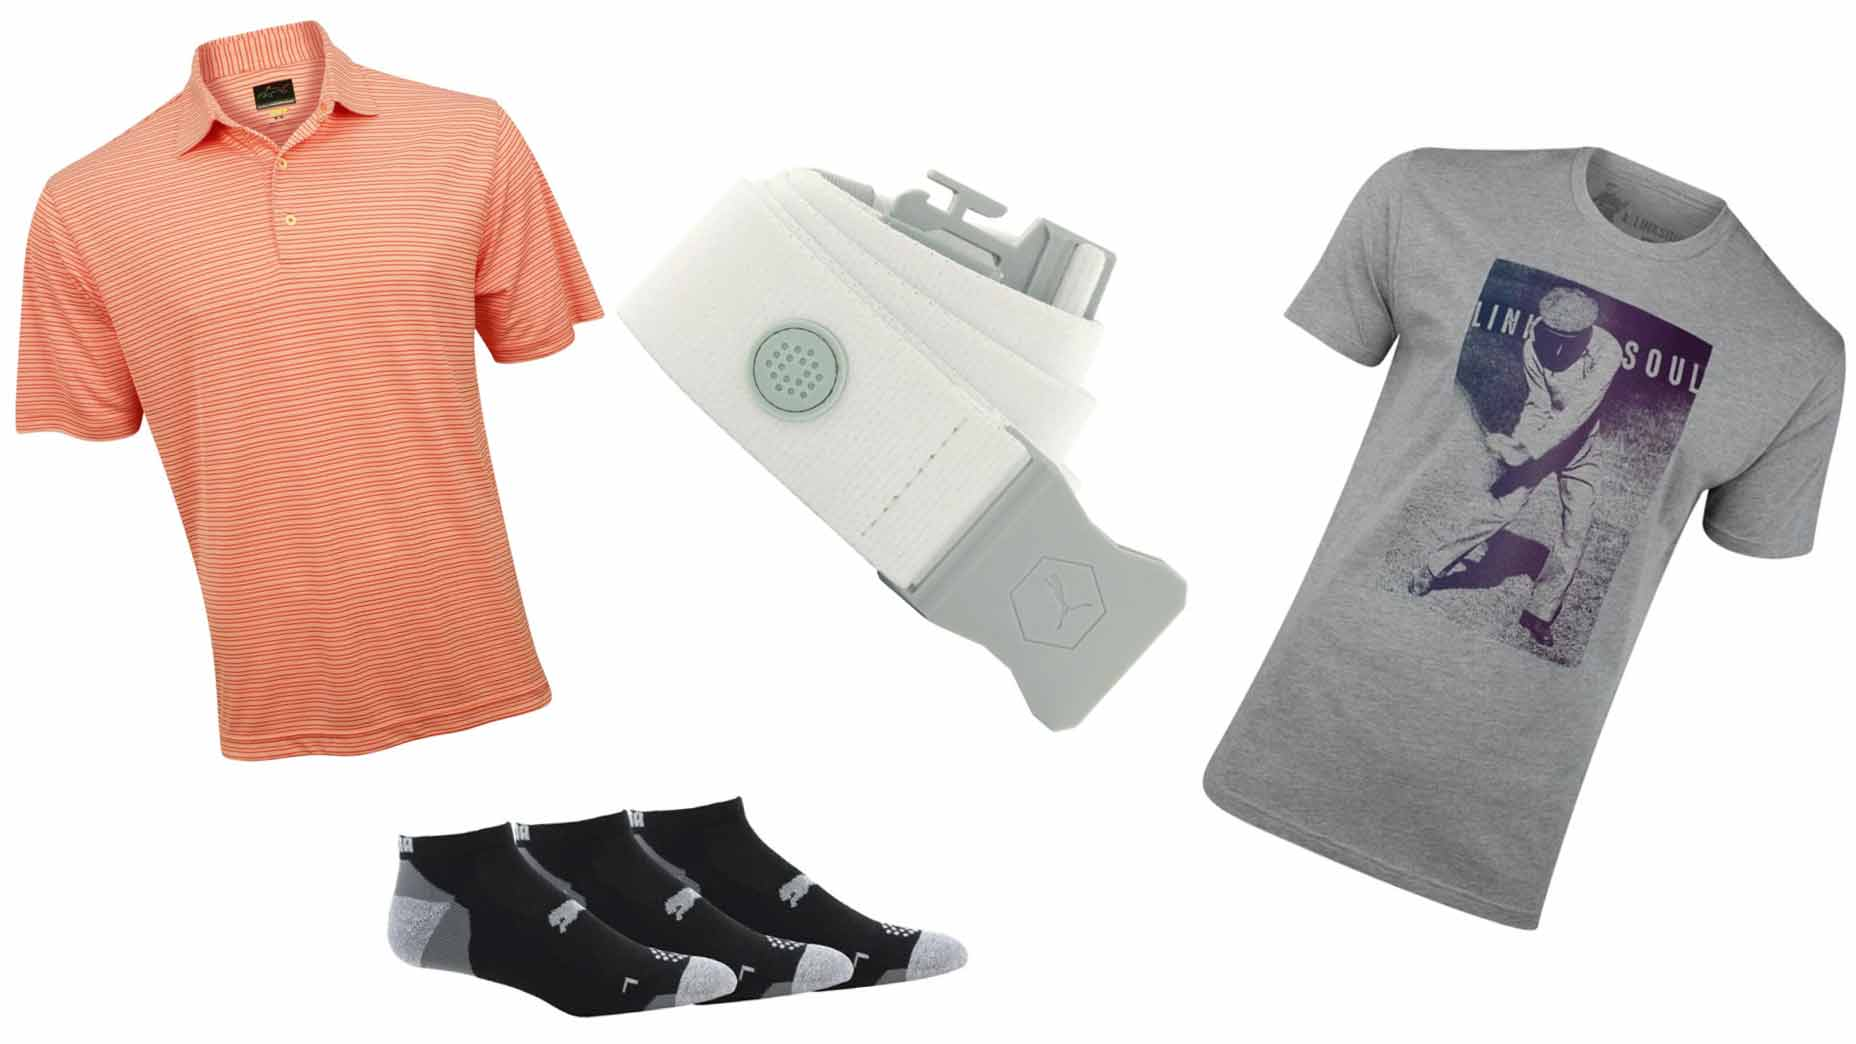 golf.com - Kevin Cunningham - 11 great items from GOLF's Pro Shop for under $30